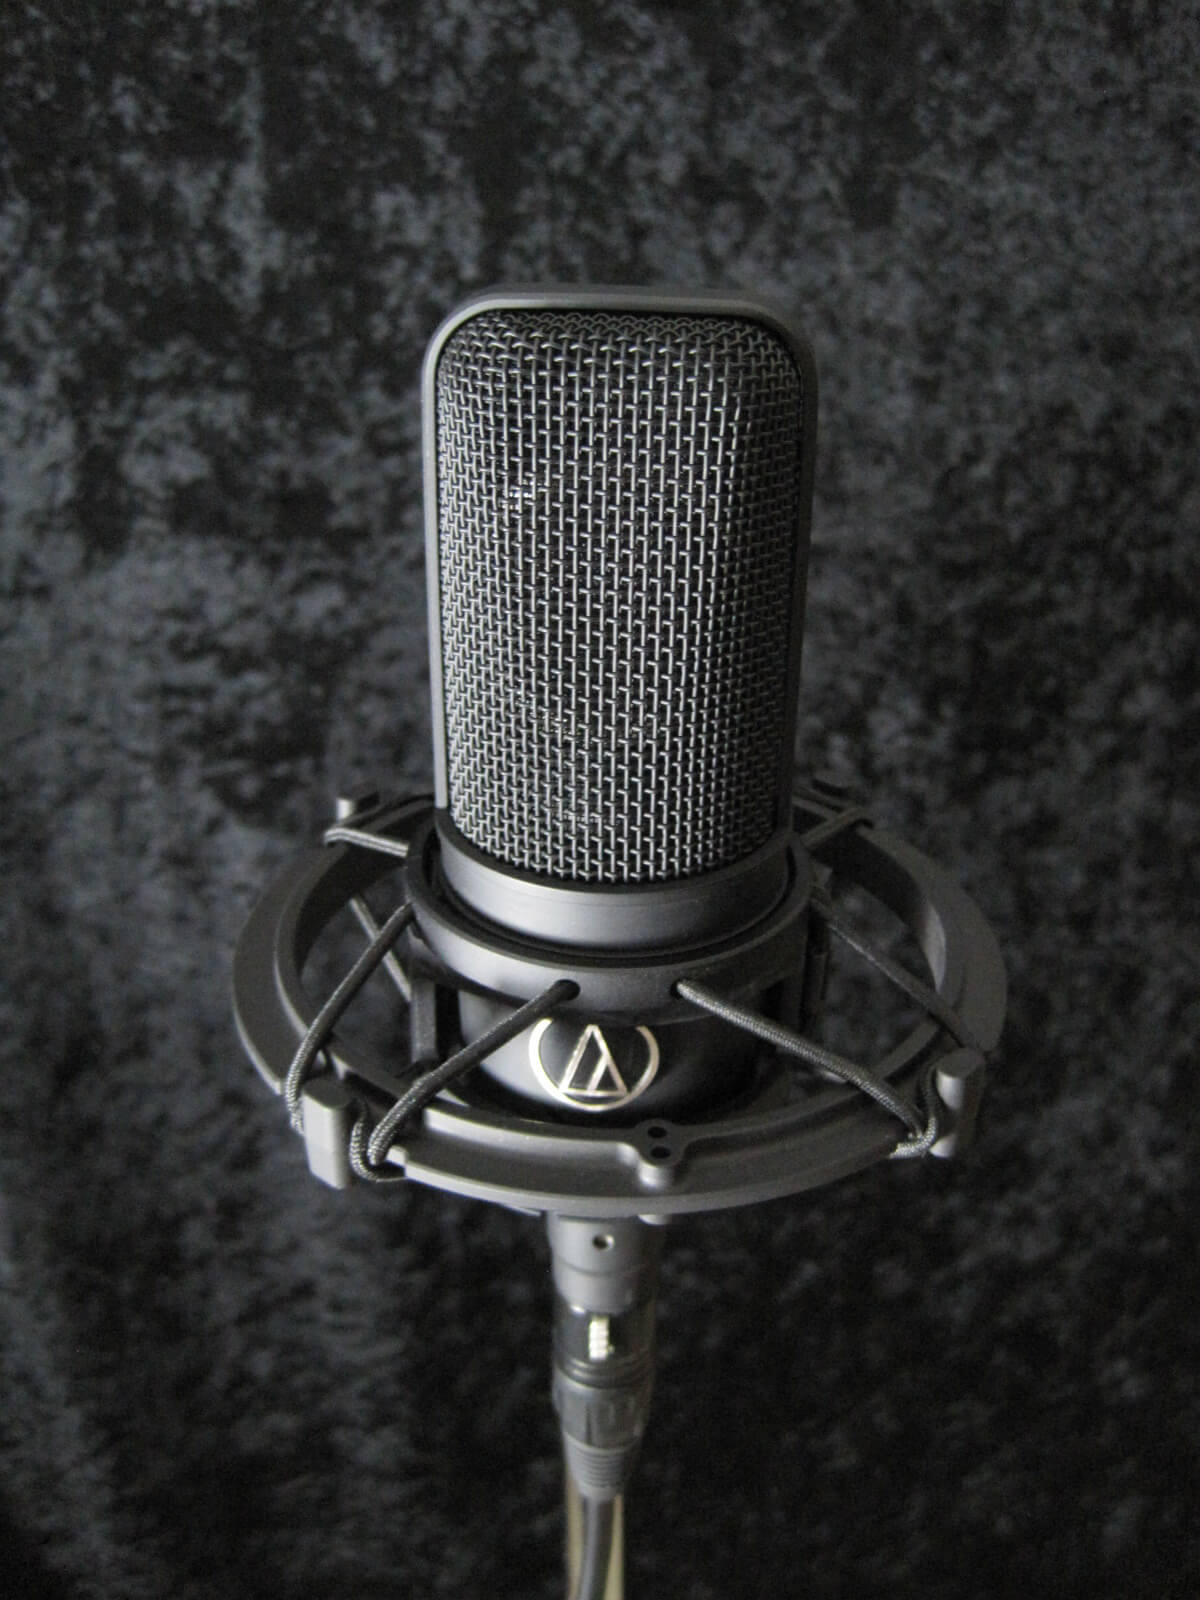 Audio technica microphone used mostly for voice recording